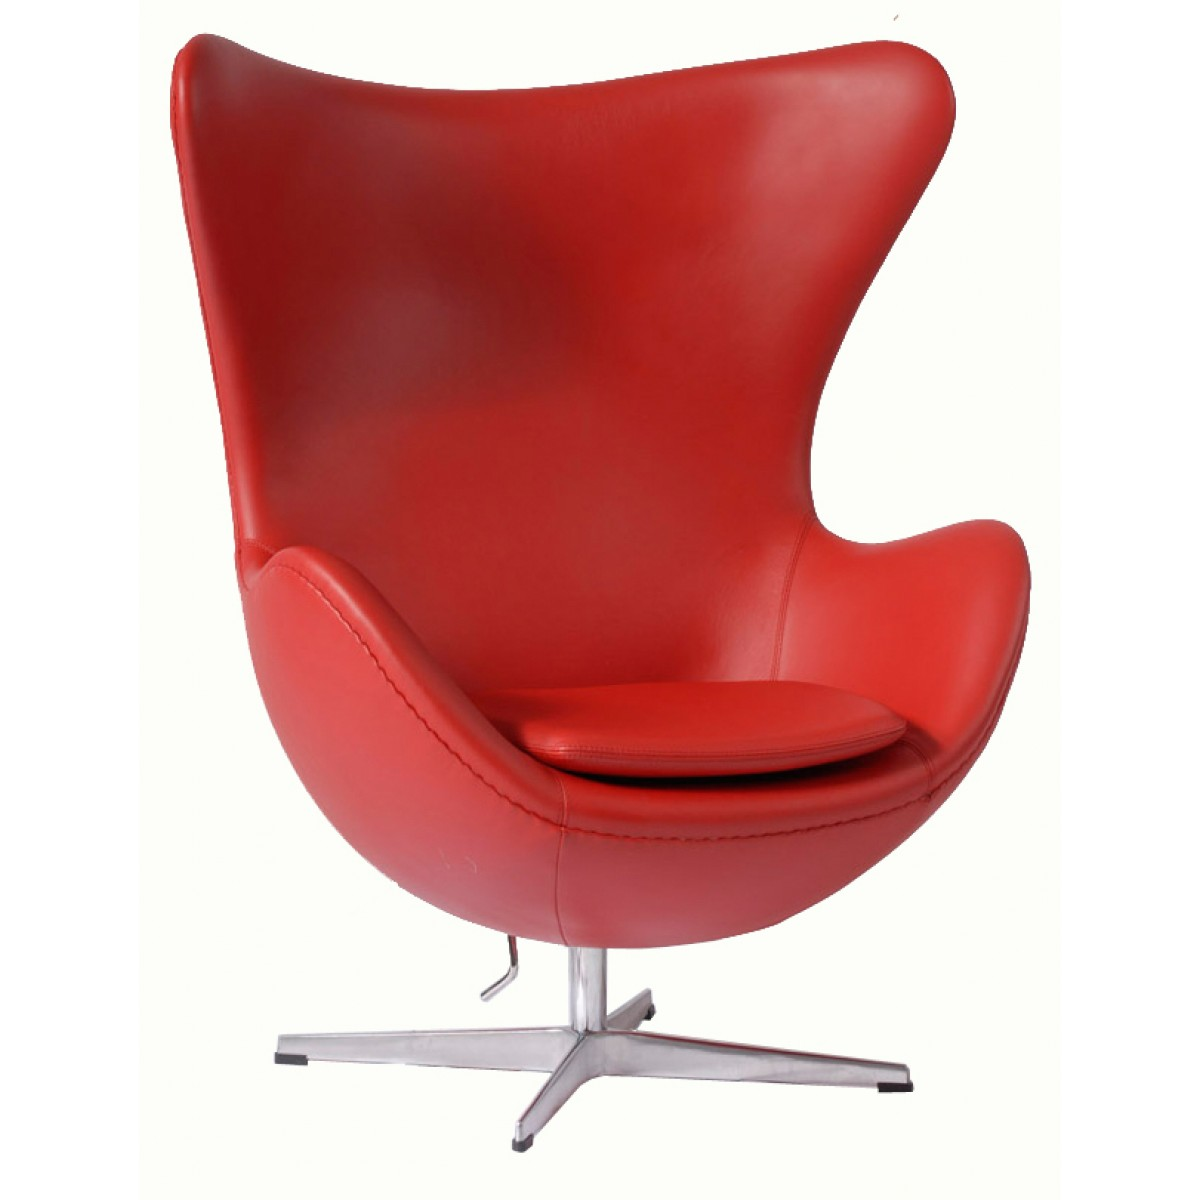 Arne jacobsen style egg chair for Egg chair jacobsen